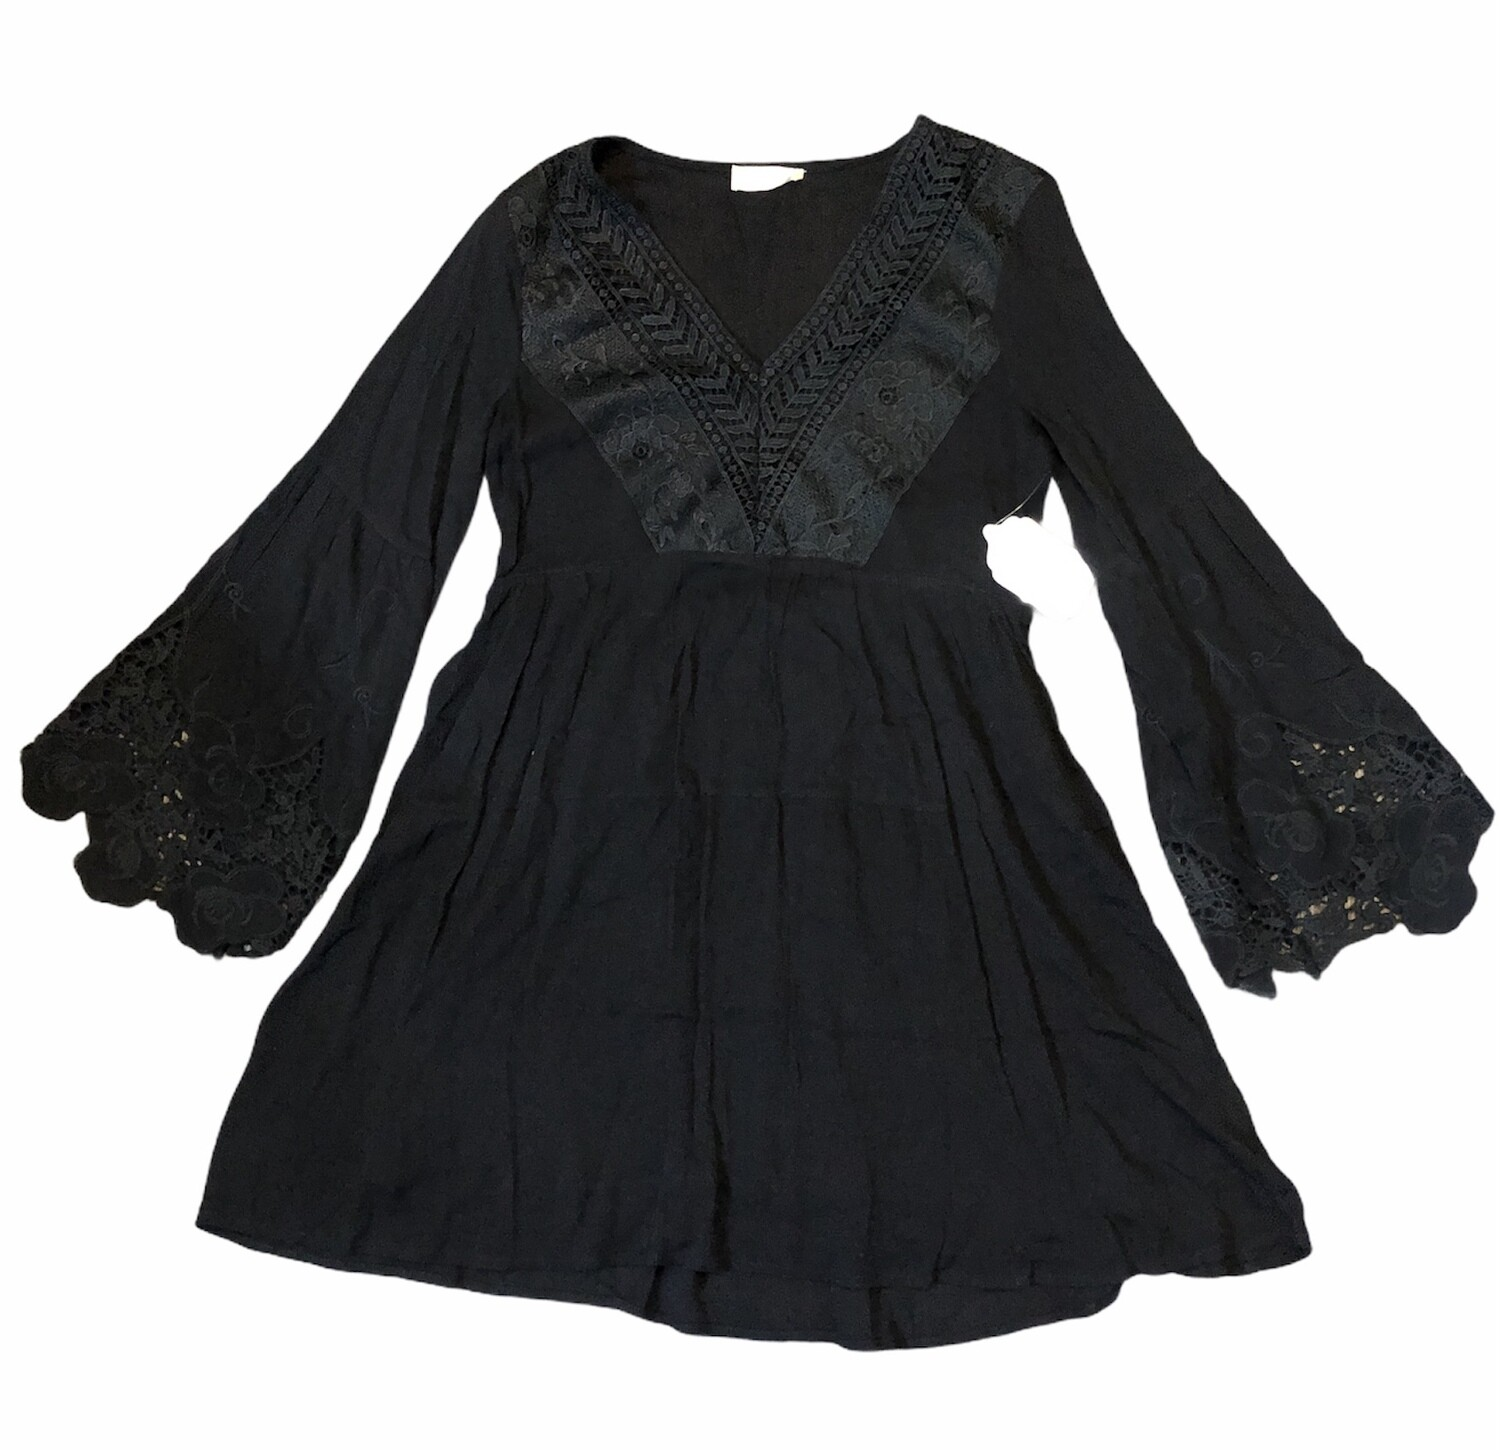 New ALTAR'D STATE Black Tunic Boho Dress w/ Eyelet Accent size S, $89